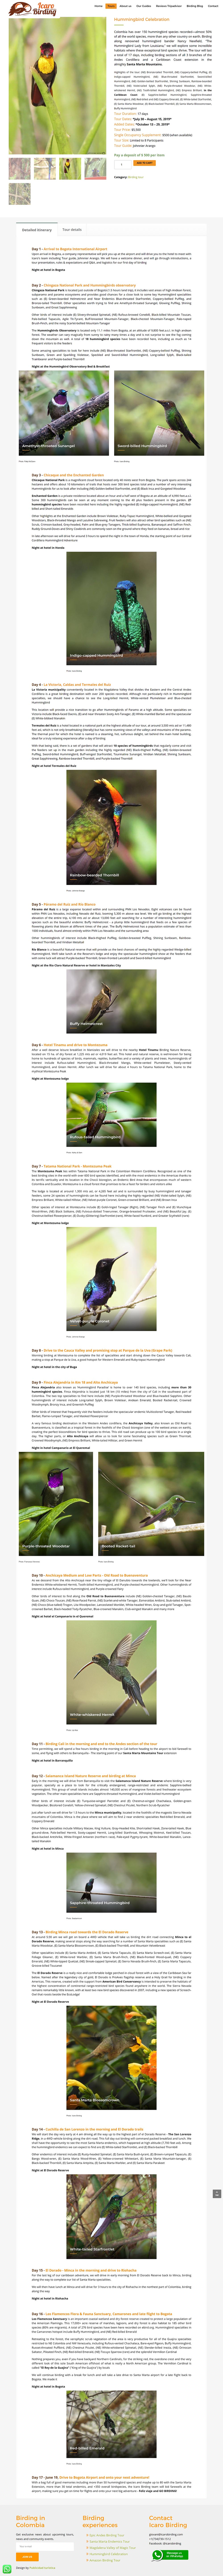 sitios web tours aves colombia